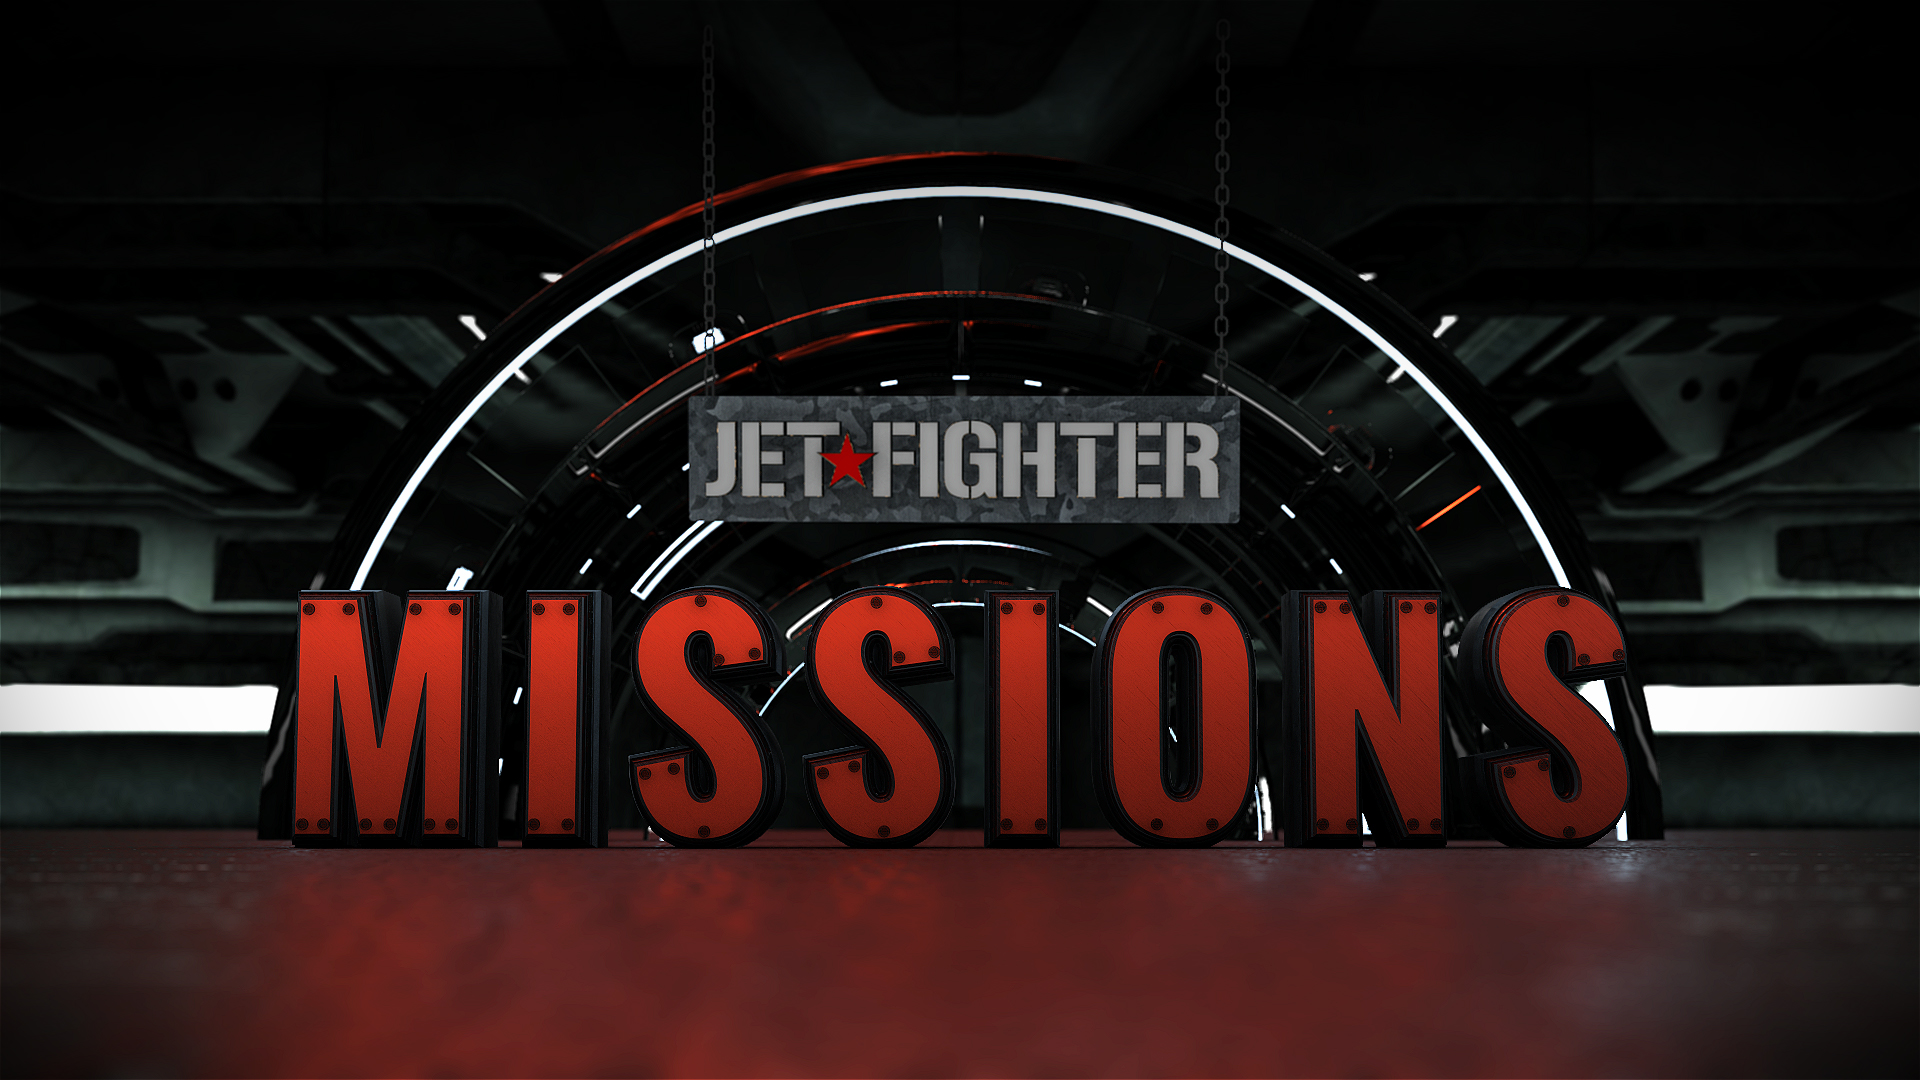 Jet Fighter Missions: Adventure Flight, Adrenaline Flight & Scenic Flights